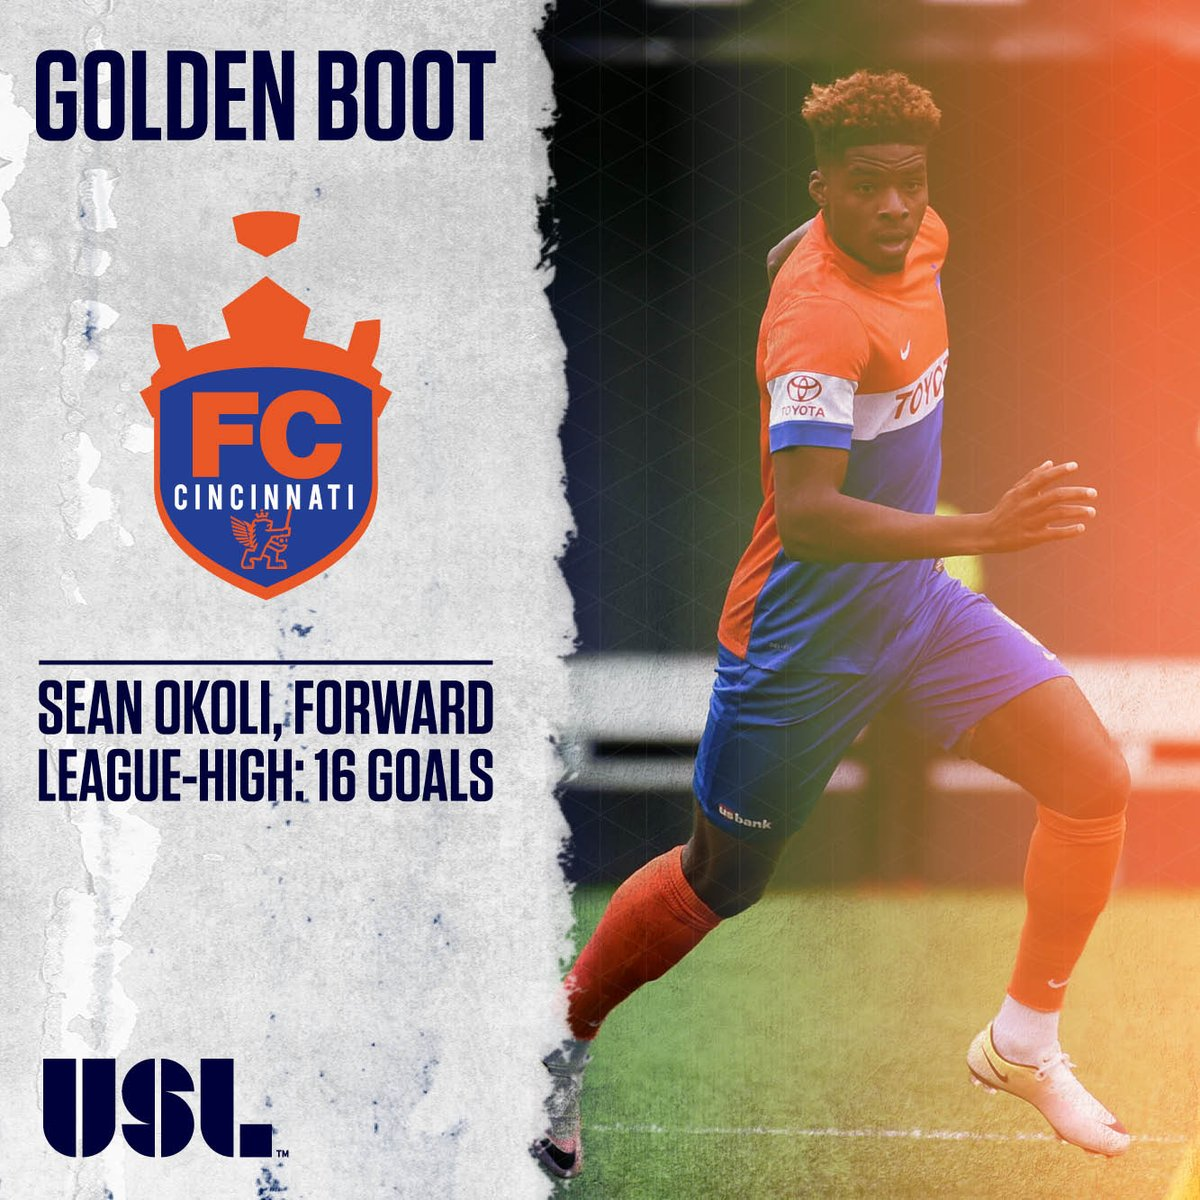 Congrats to @AskAboutUgo for being the 2016 #USL Golden Boot winner with 16 goals on the season! https://t.co/KA8vzWFeCB